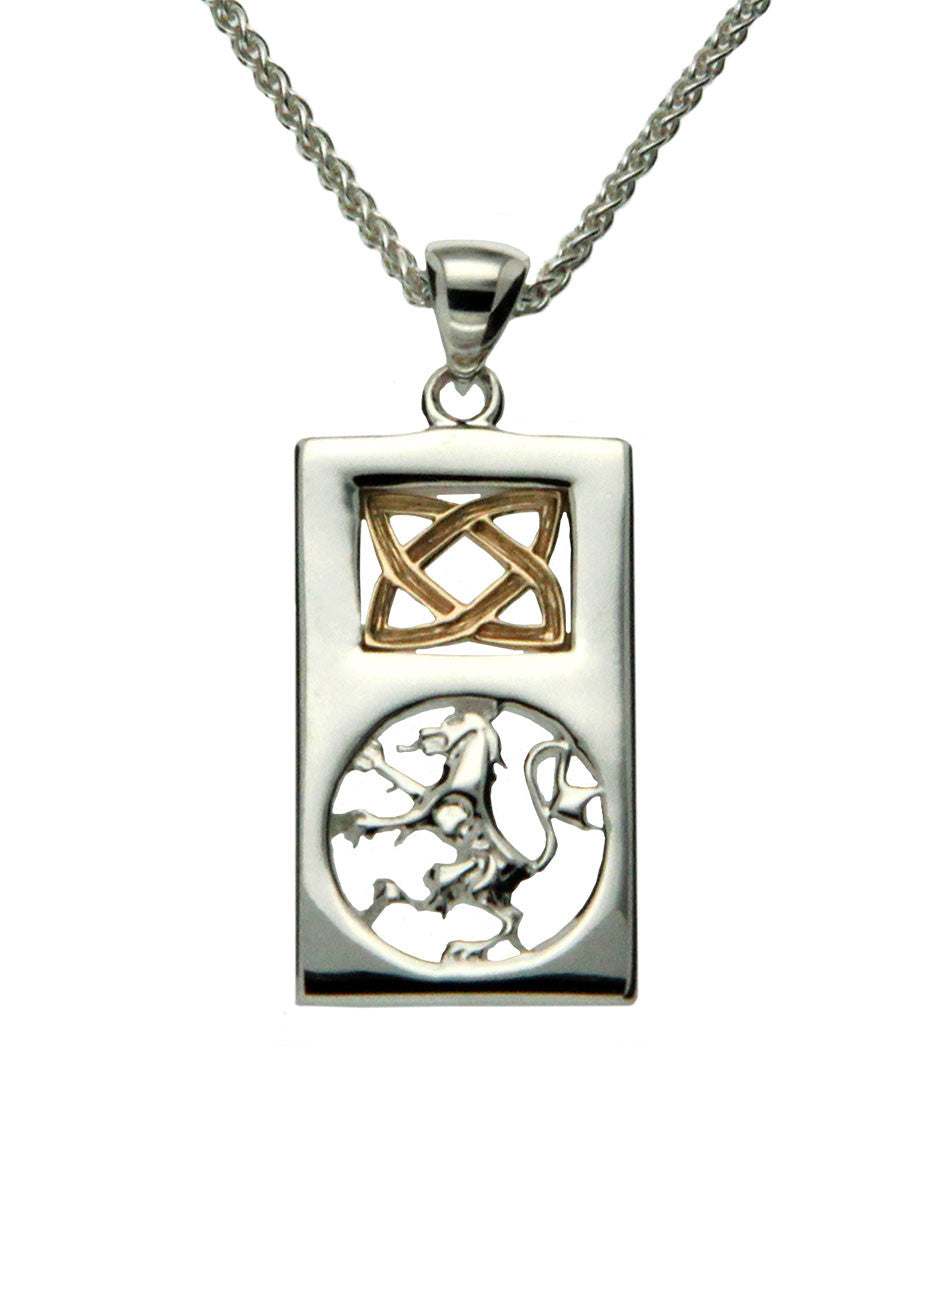 Scottish Rampant Pendant - Sterling Silver and 10k Gold - Small